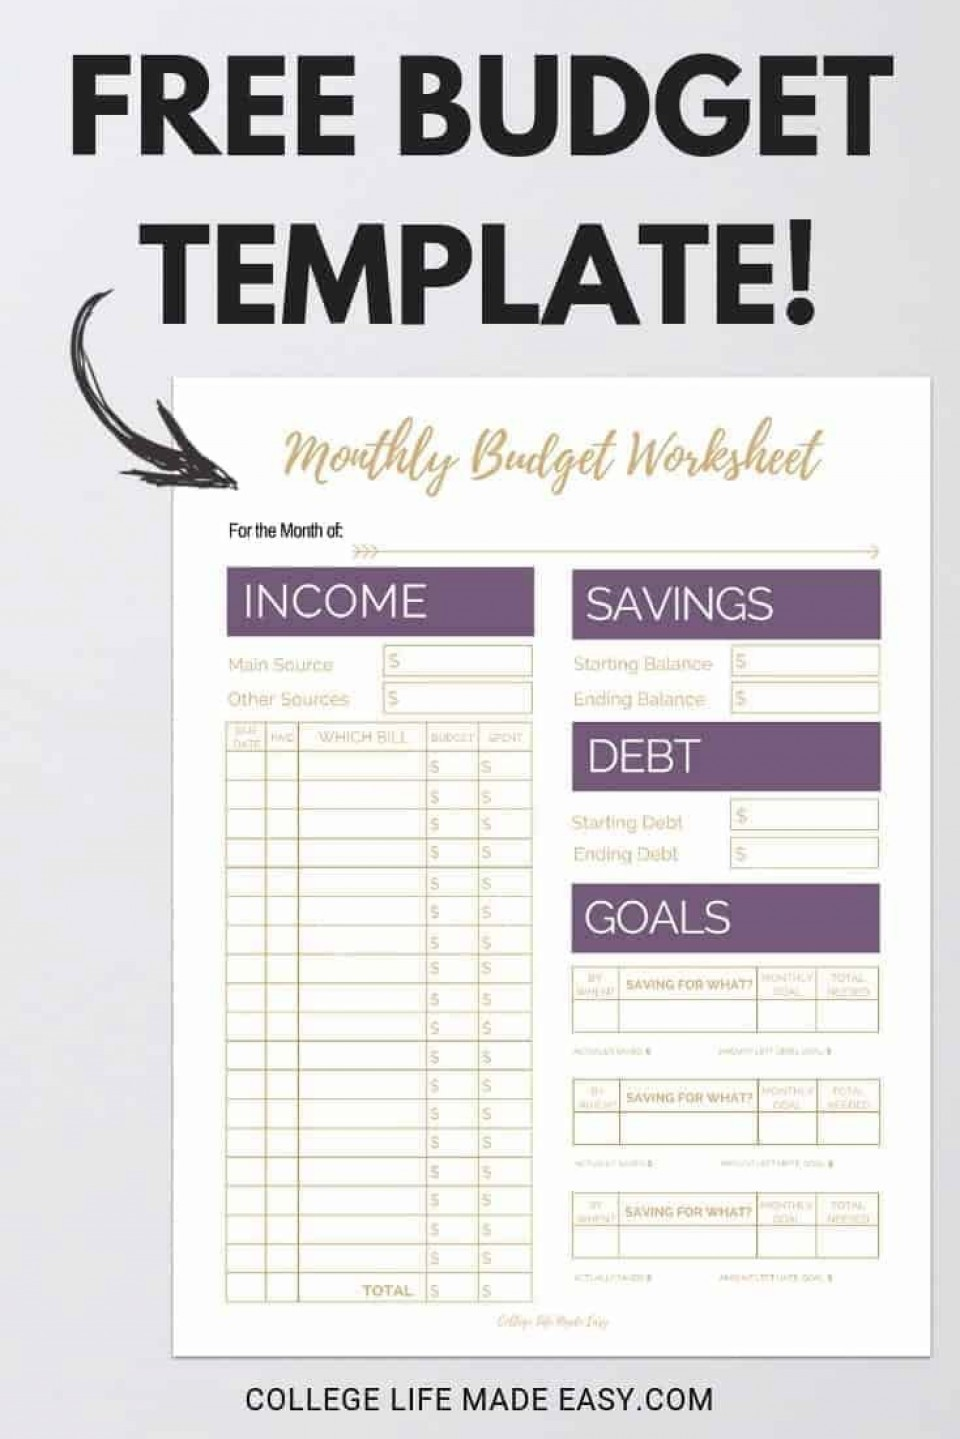 004 Archaicawful Free Printable Home Budget Template Photo  Form960